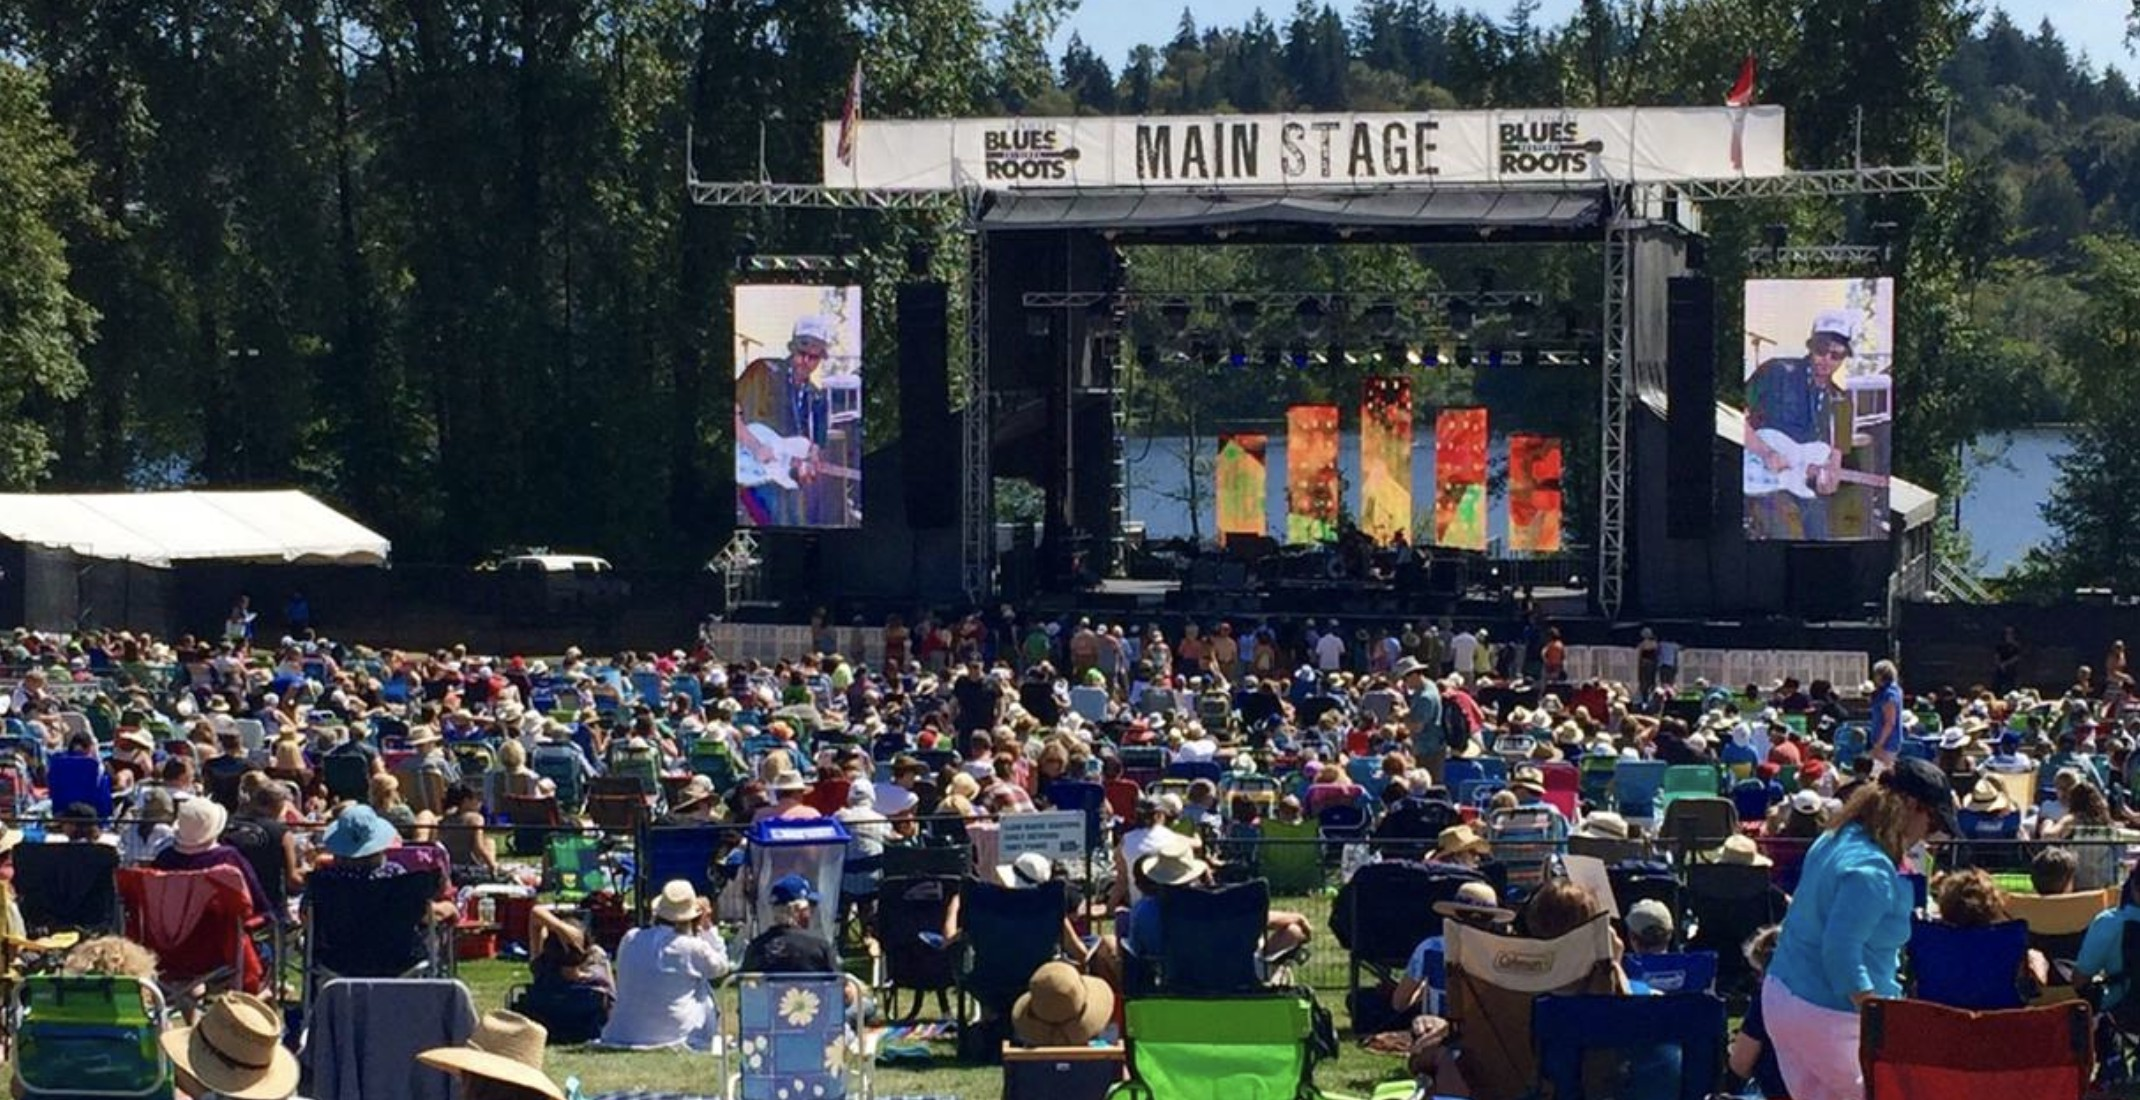 Full list of headliners announced for Burnaby Blues & Roots Festival 2018